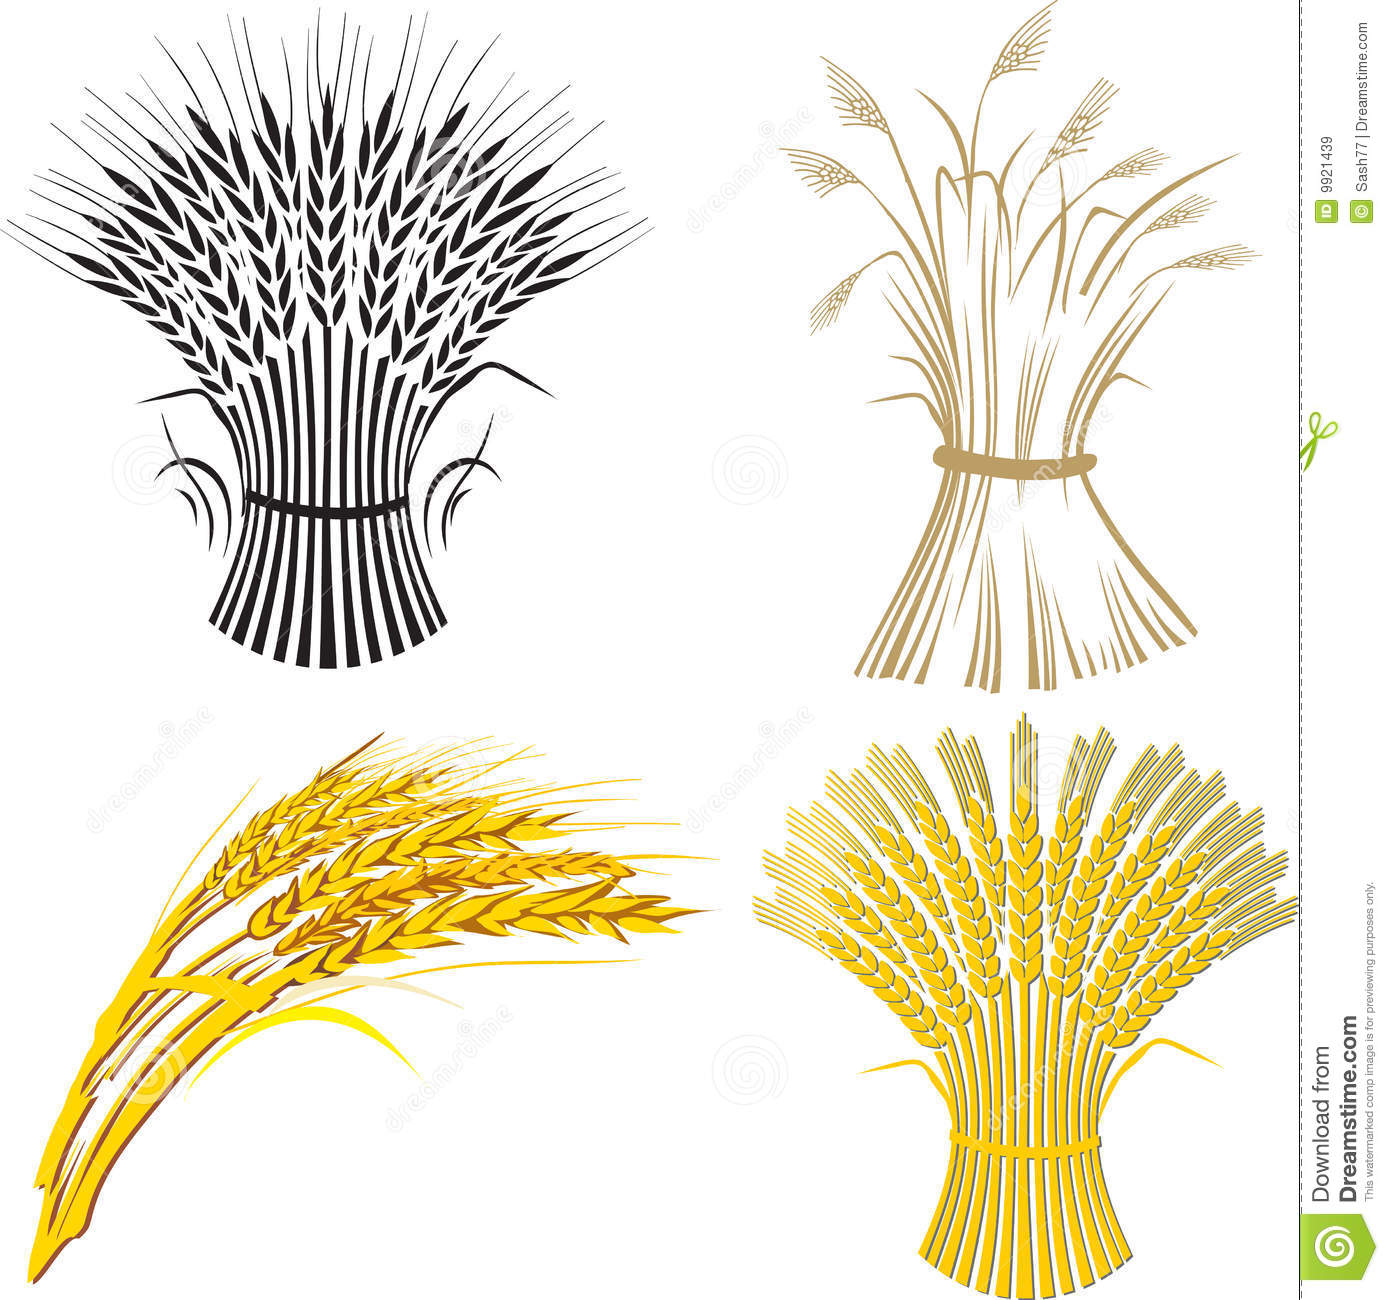 Illustration Of Four Wheat Sheafs